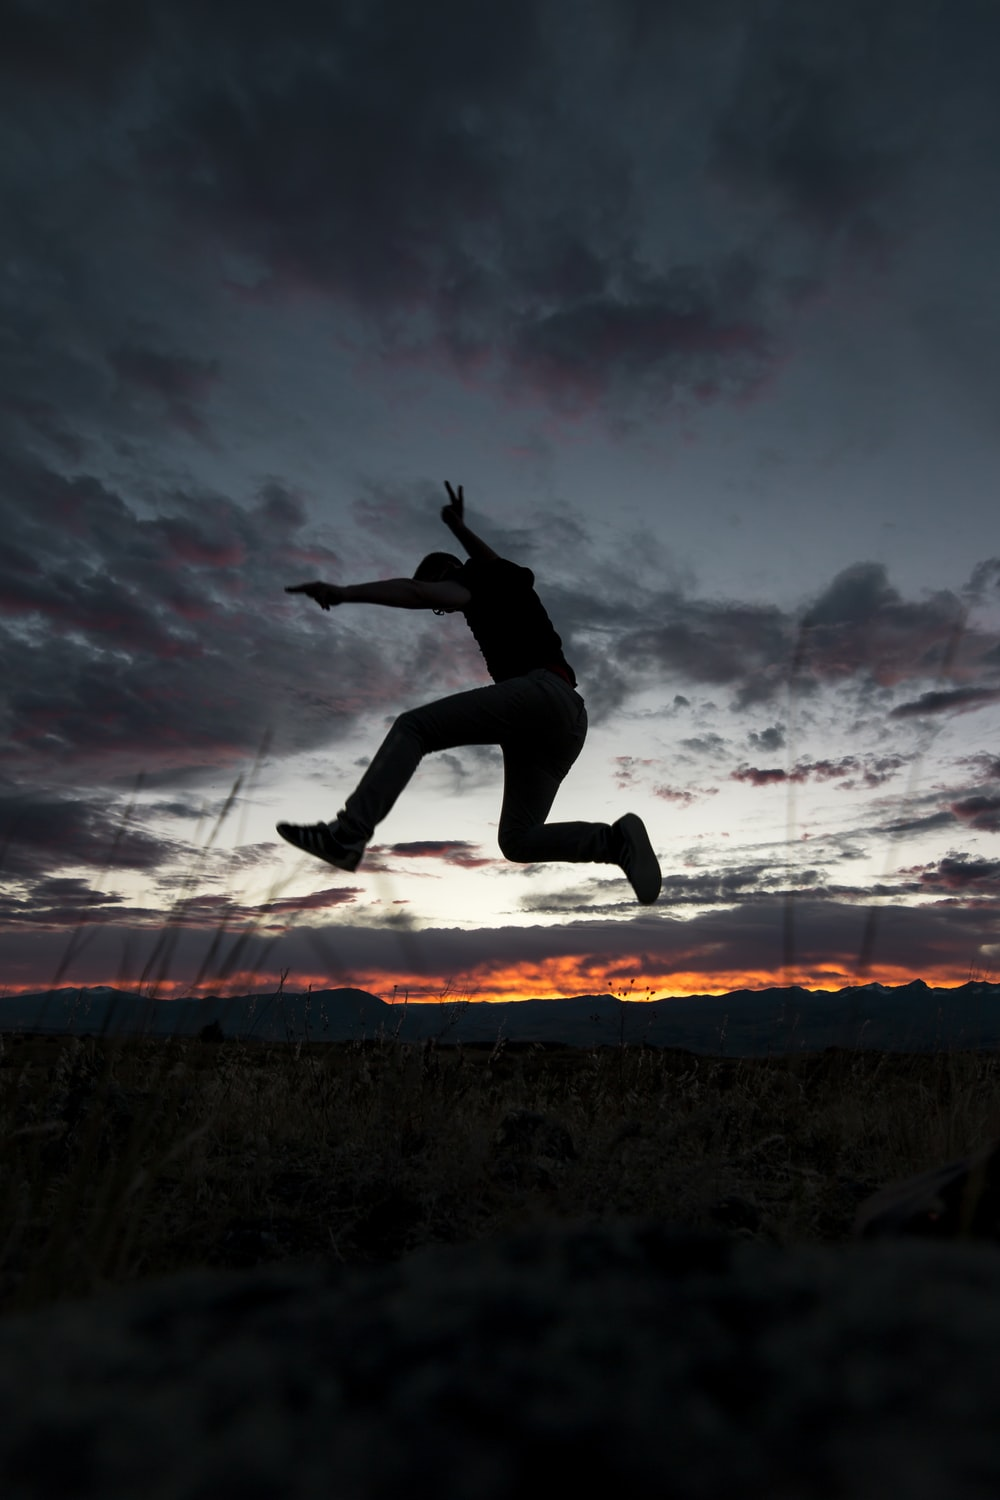 man leaping above ground under cloudy skies golden hour photography